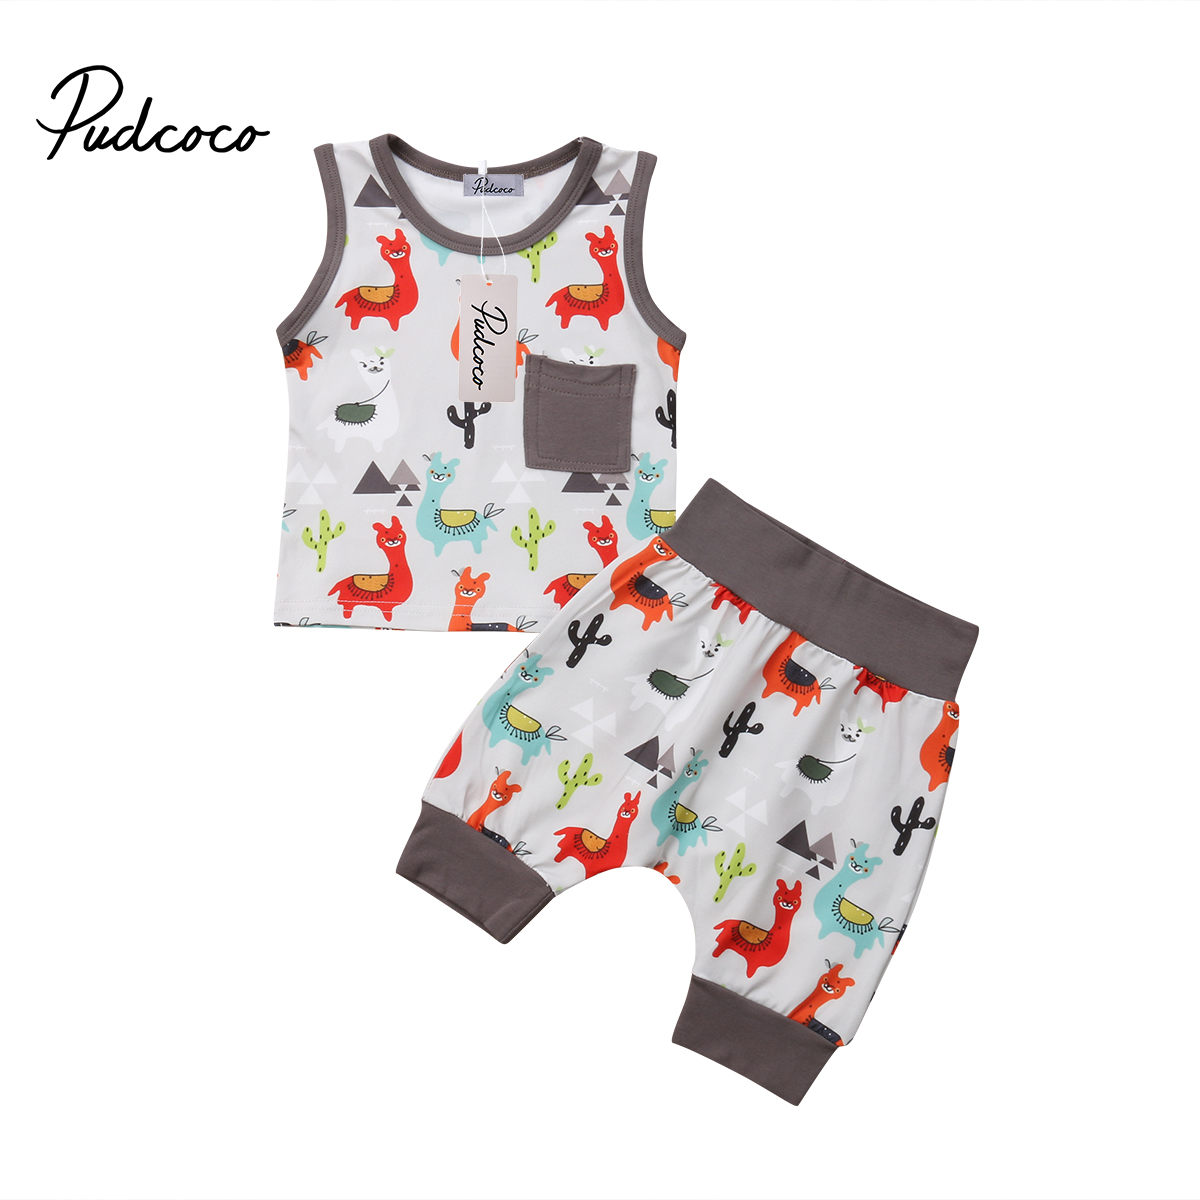 Pudcoco Alpaca Clothing Toddler Kids Baby Girl Boy Clothes Summer Tops Cotton T-shirt Pants Shorts 2Pcs Outfits Clothes Set0-3T